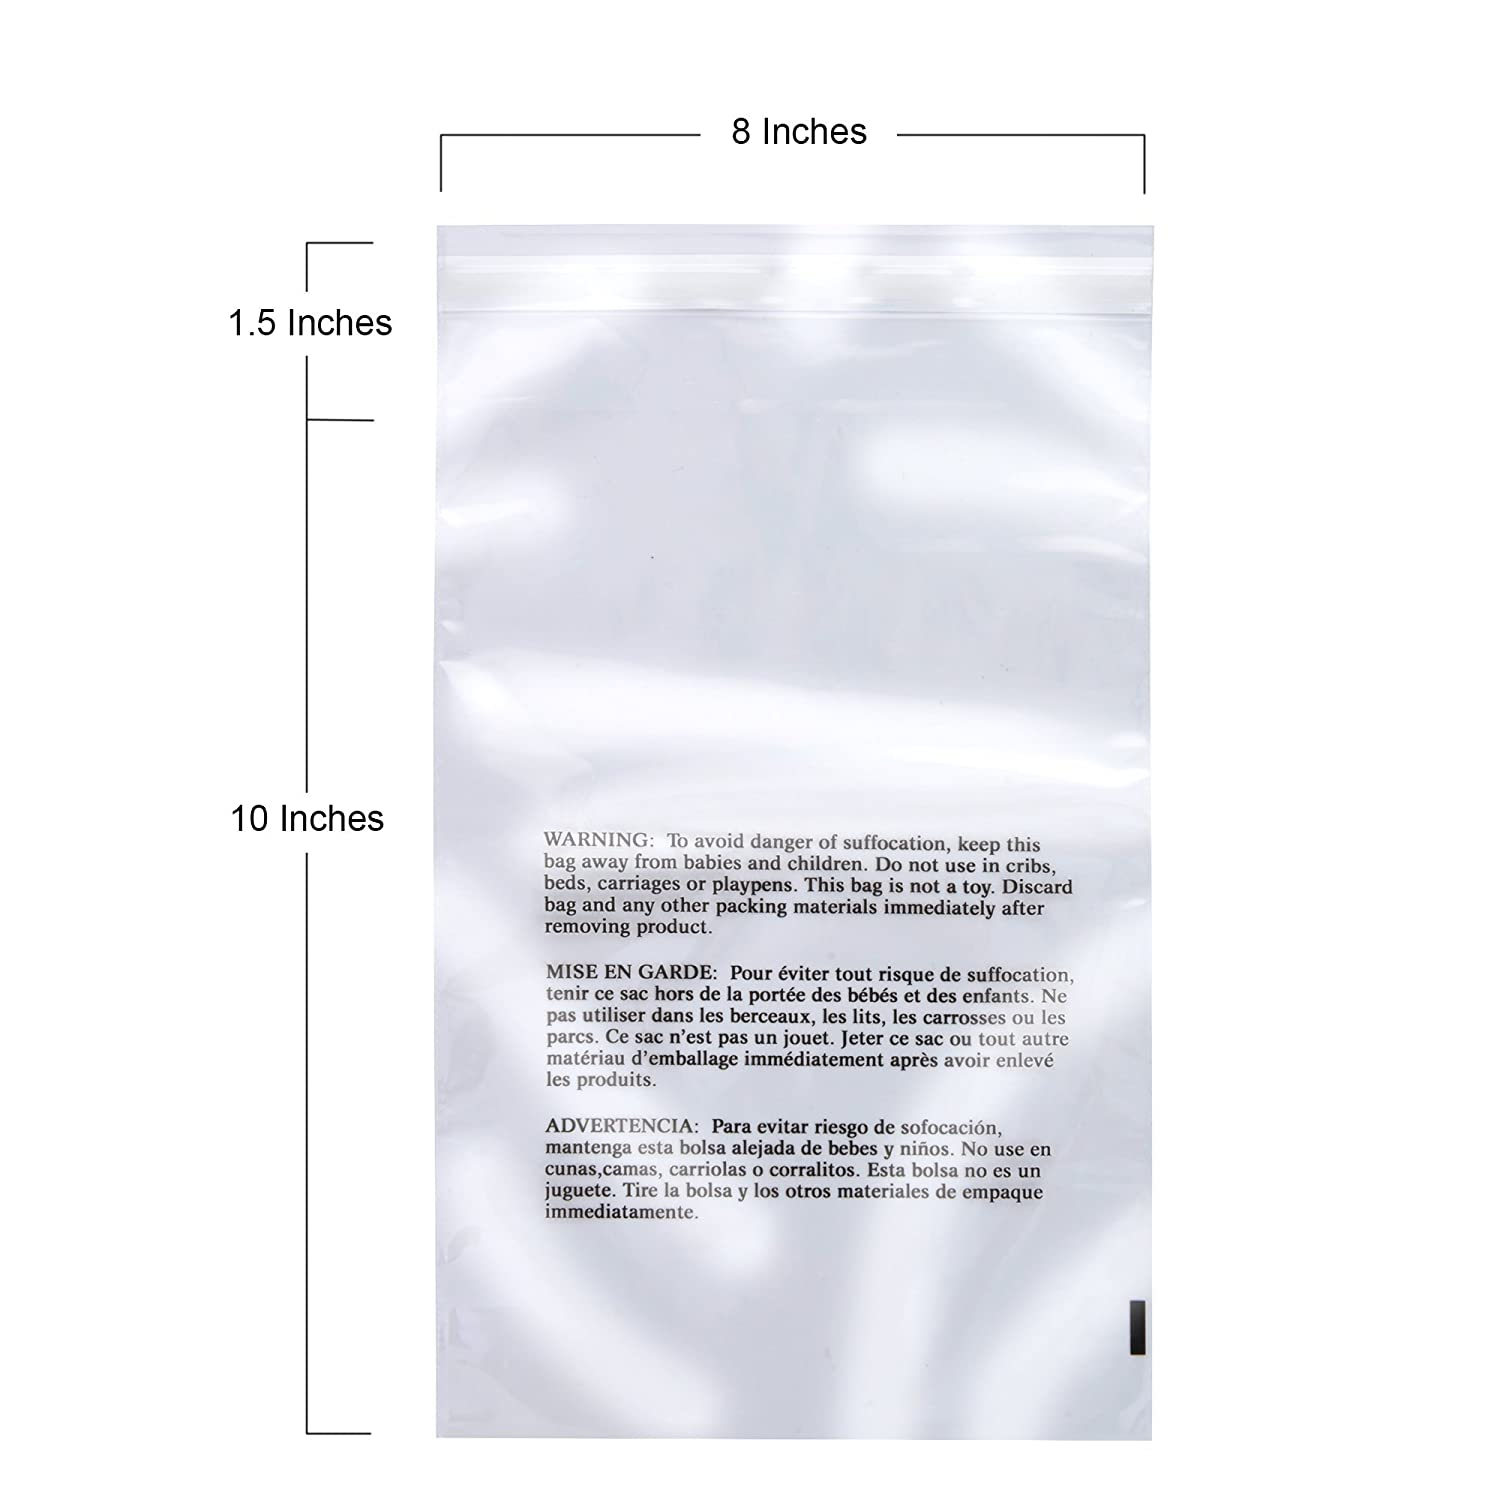 Amazon.com: Retail Supply Co Clear Poly Bags with Suffocation Warning - Multiple Size Options Available - (8x10 Extra Strong Seal): Office Products